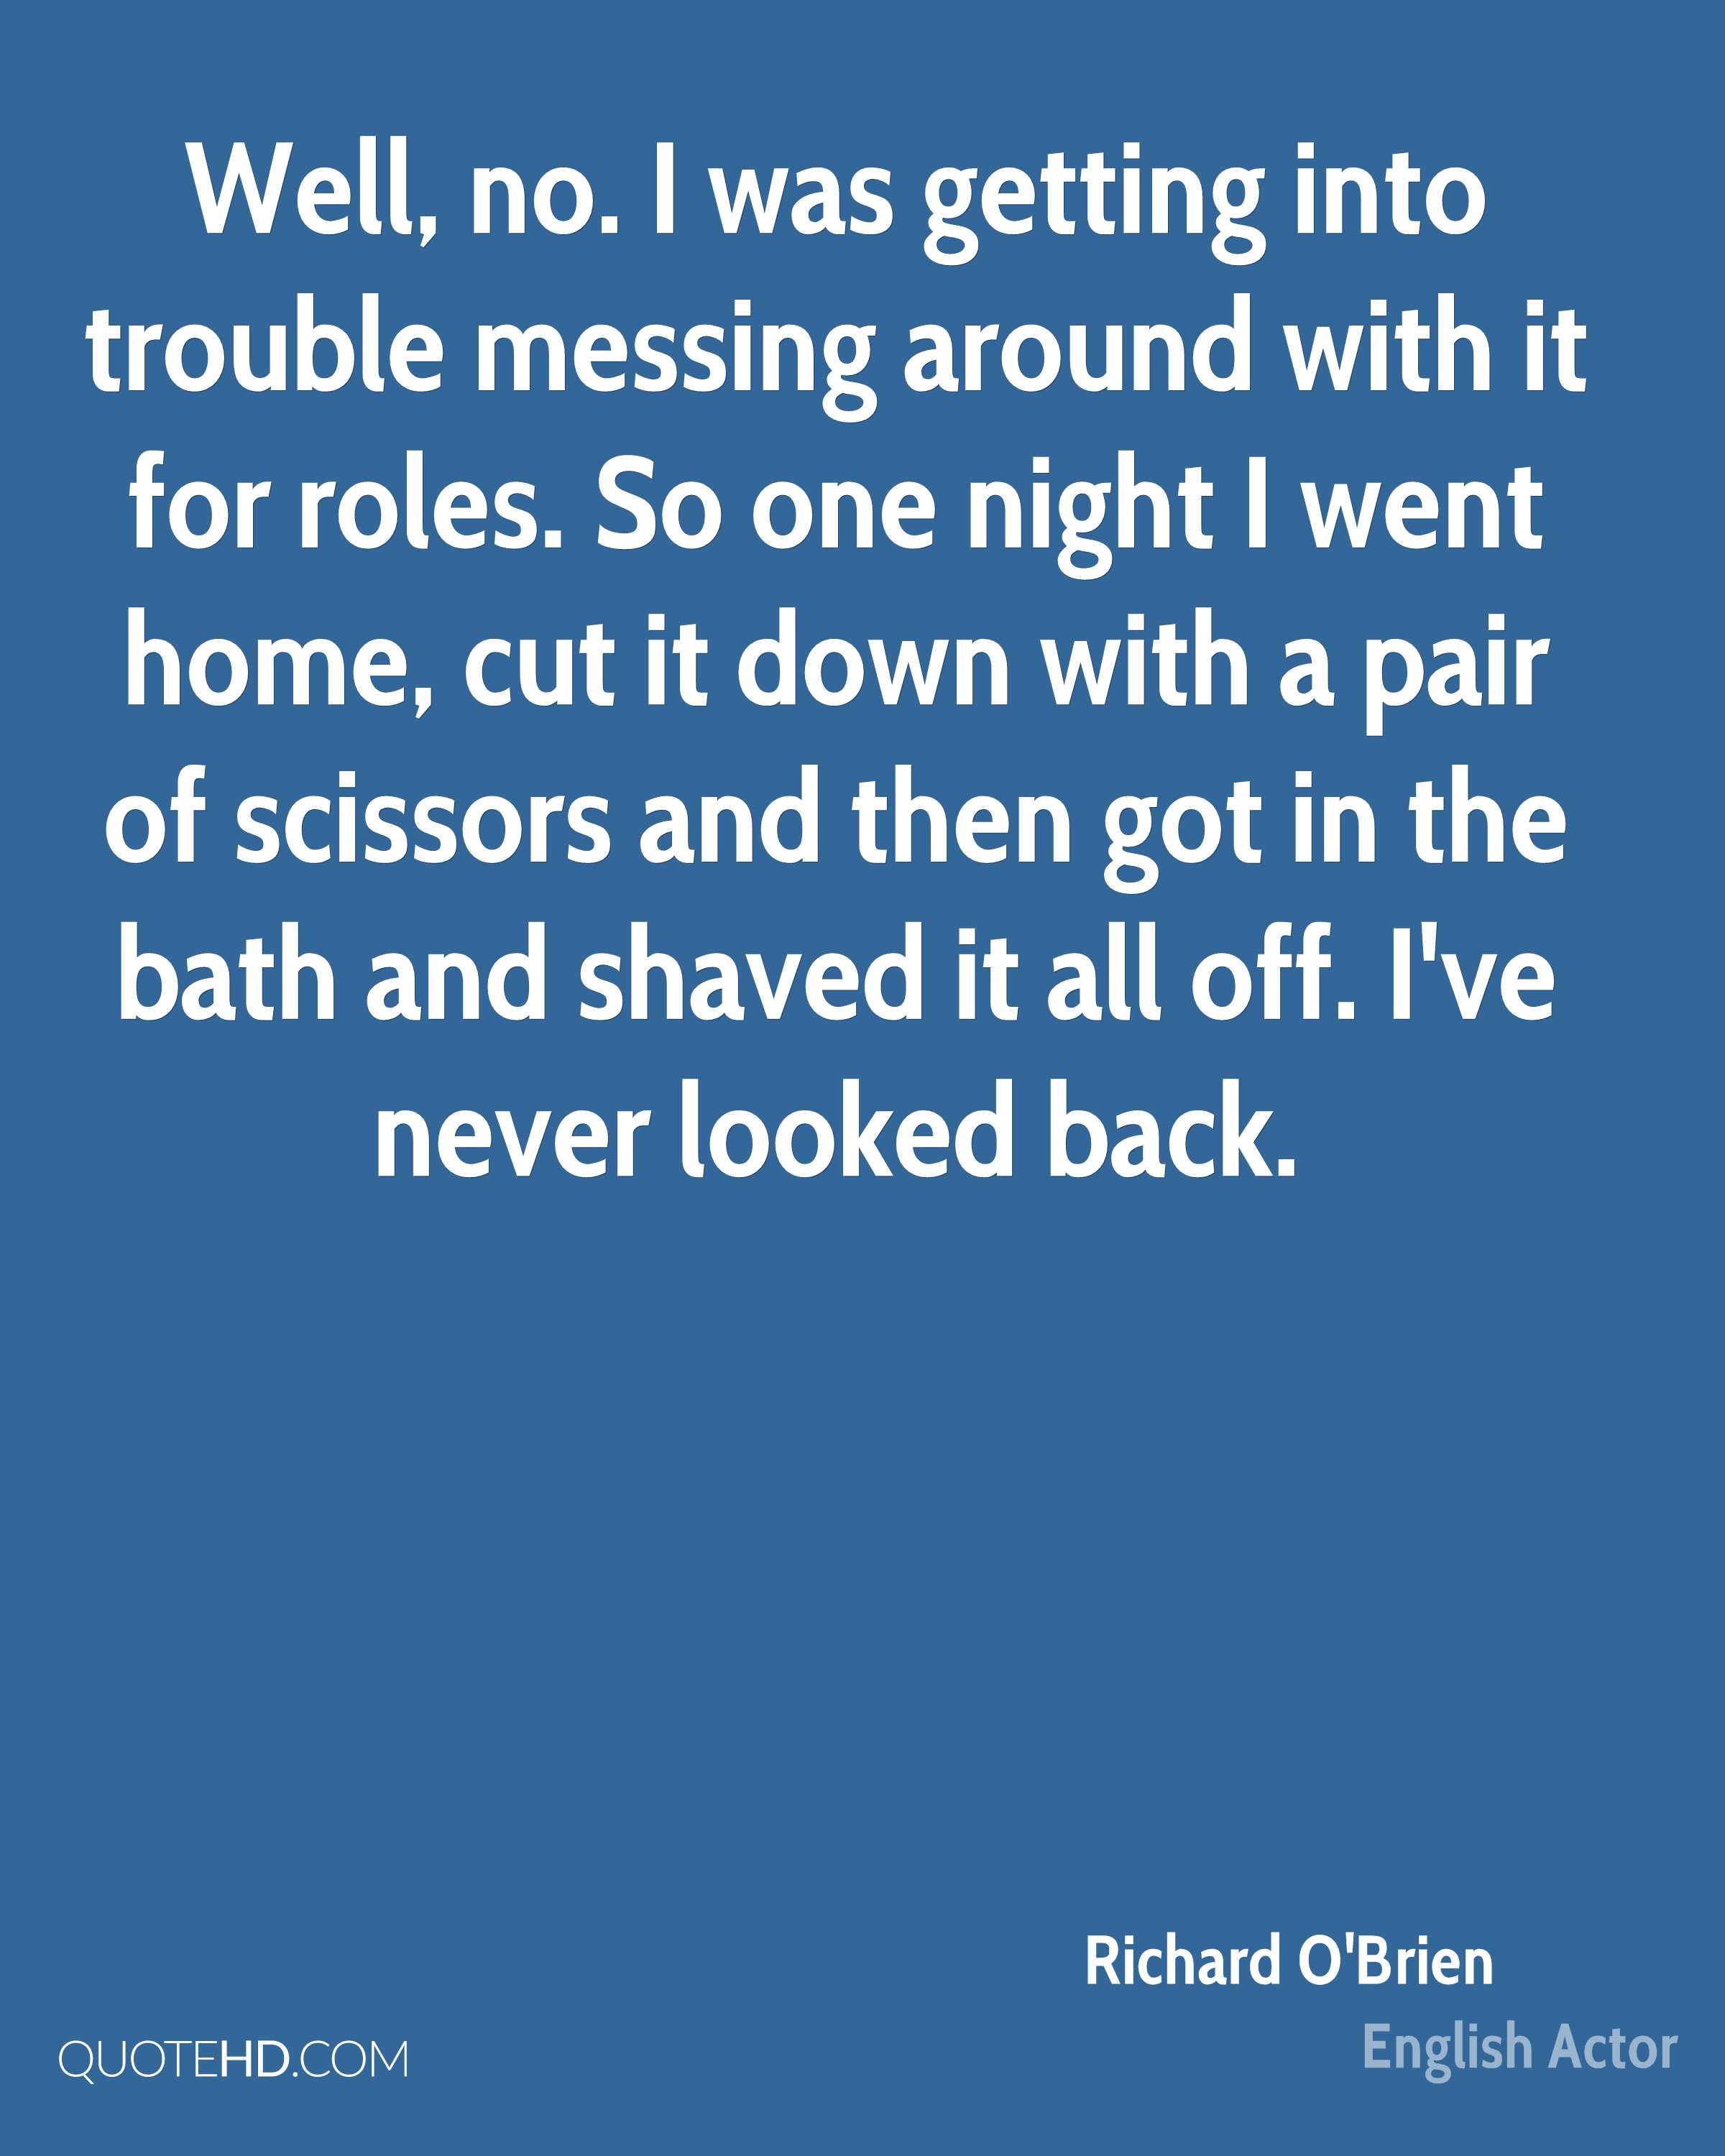 Well, no. I was getting into trouble messing around with it for roles. So one night I went home, cut it down with a pair of scissors and then got in the bath and shaved it all off. I've never looked back.